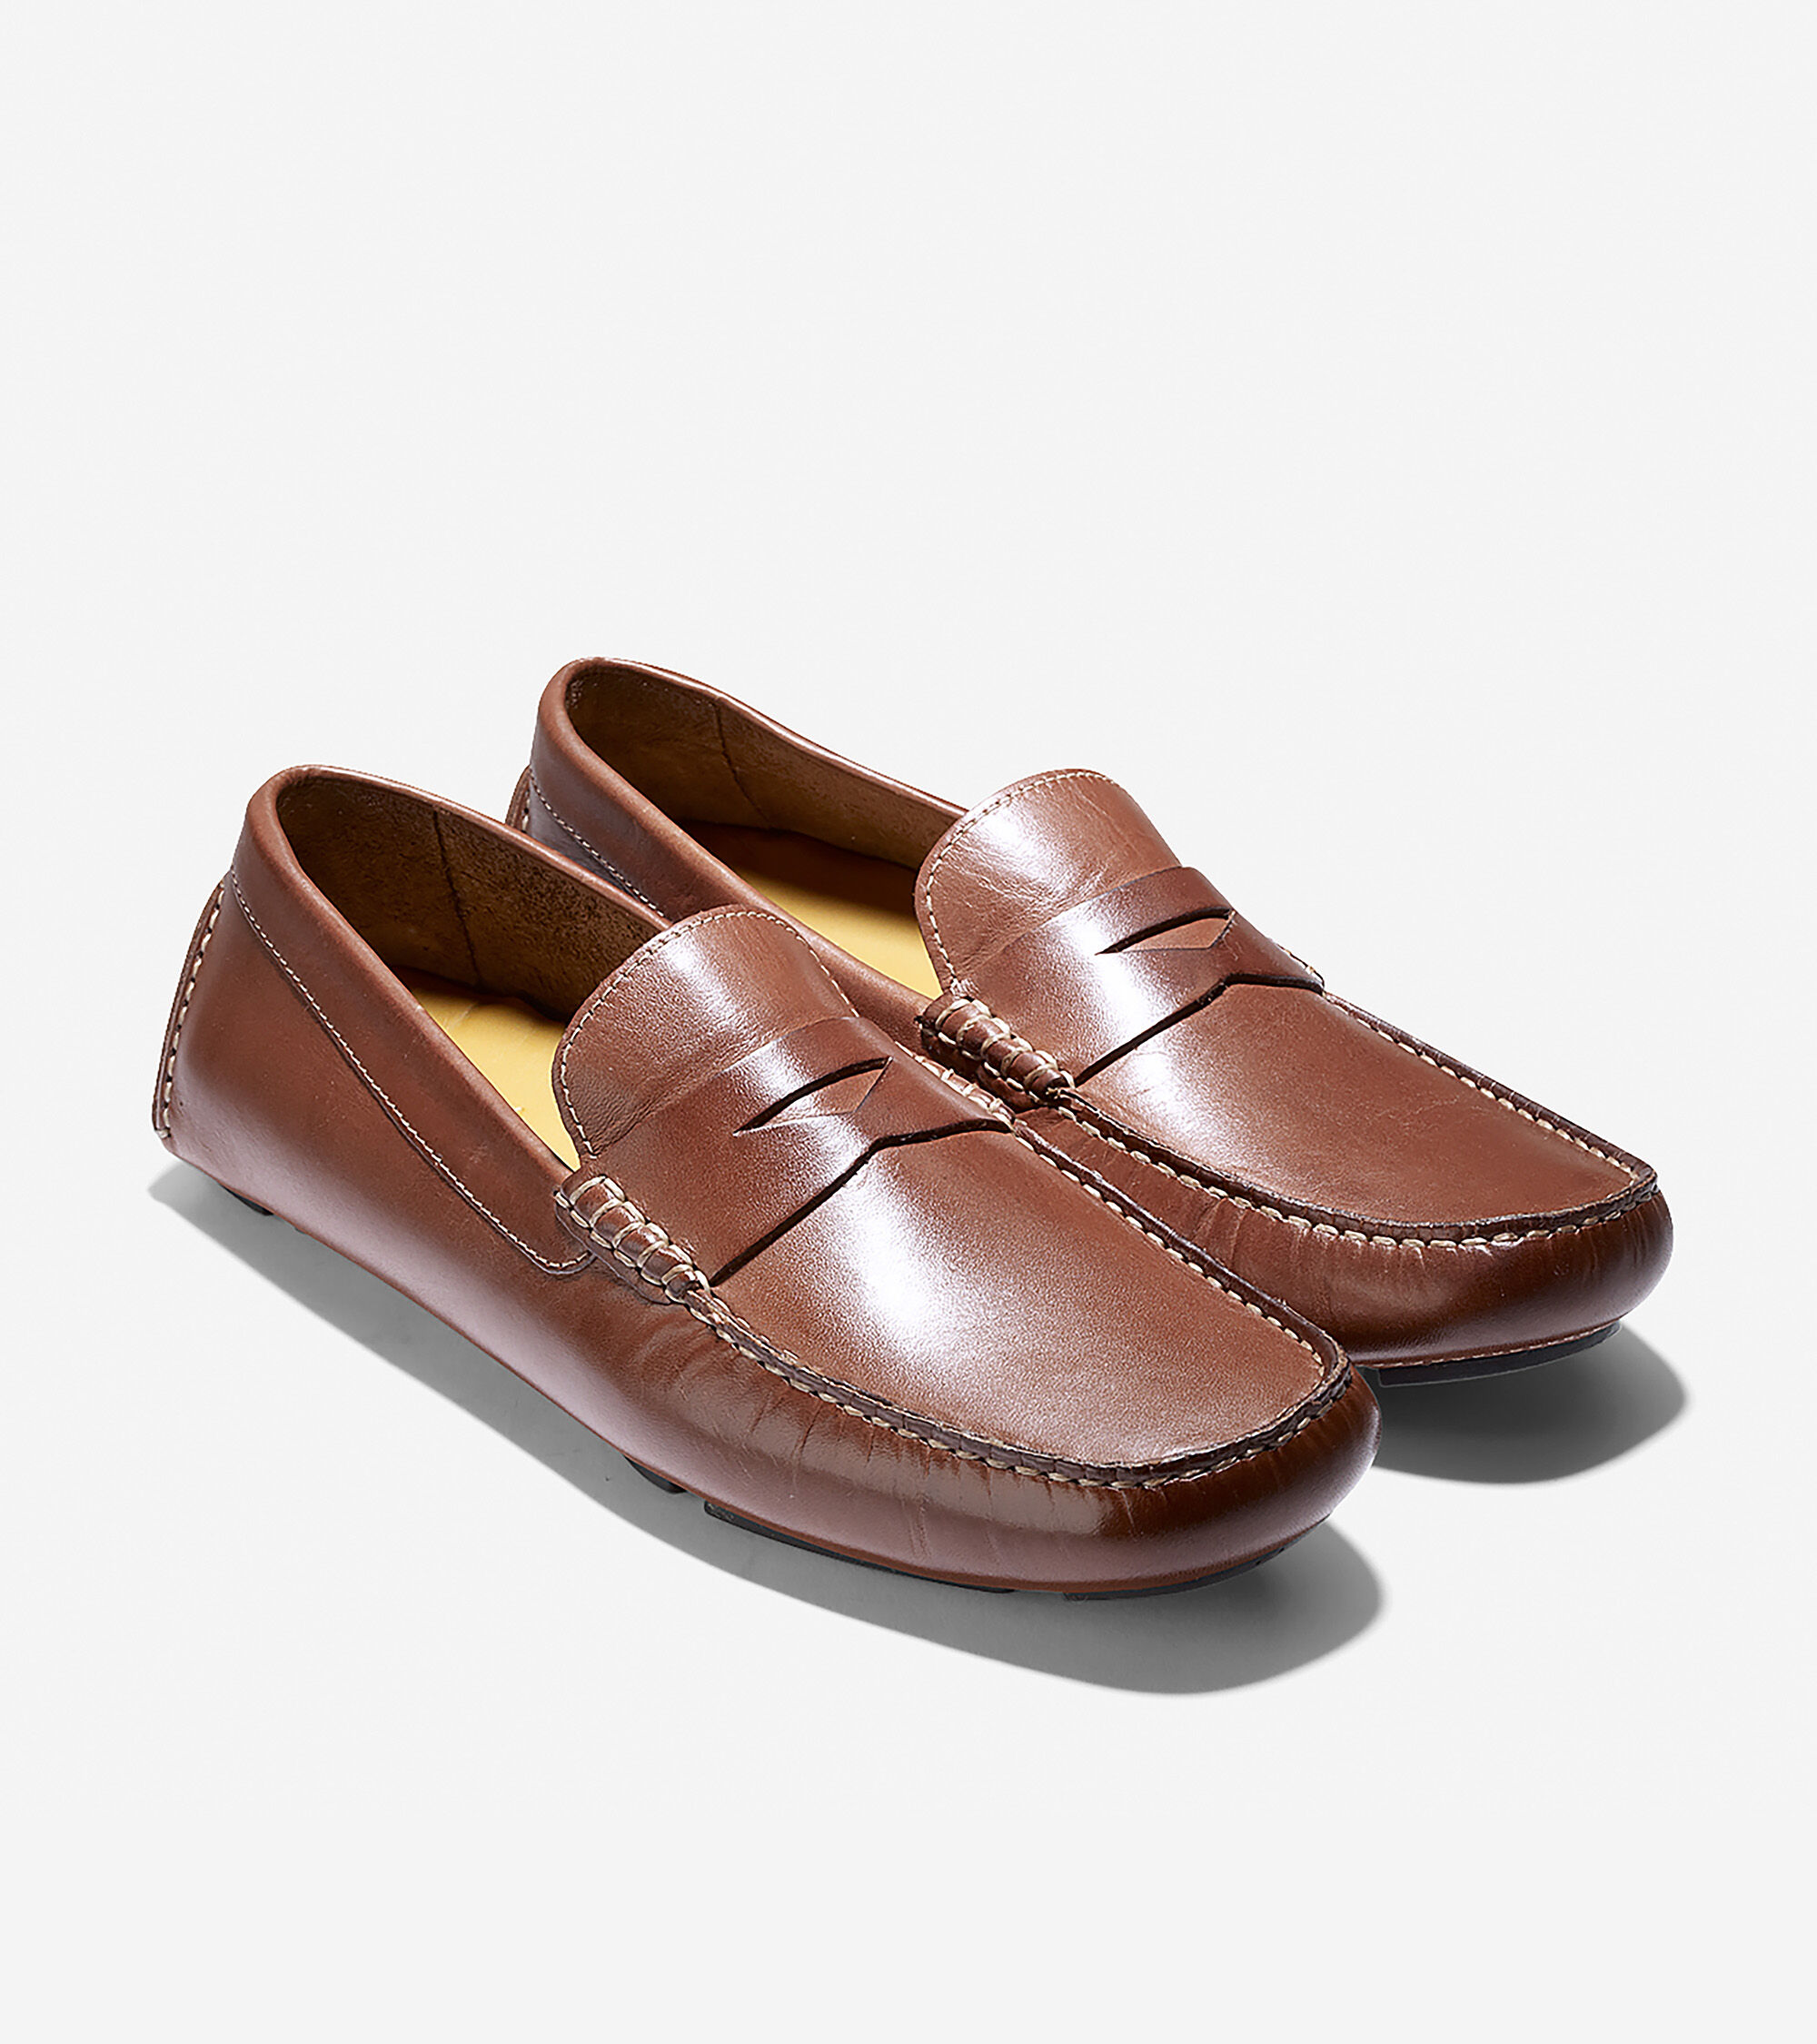 8cb97b1cbeed9 Howland Penny in Saddle Tan : Mens Shoes | Cole Haan